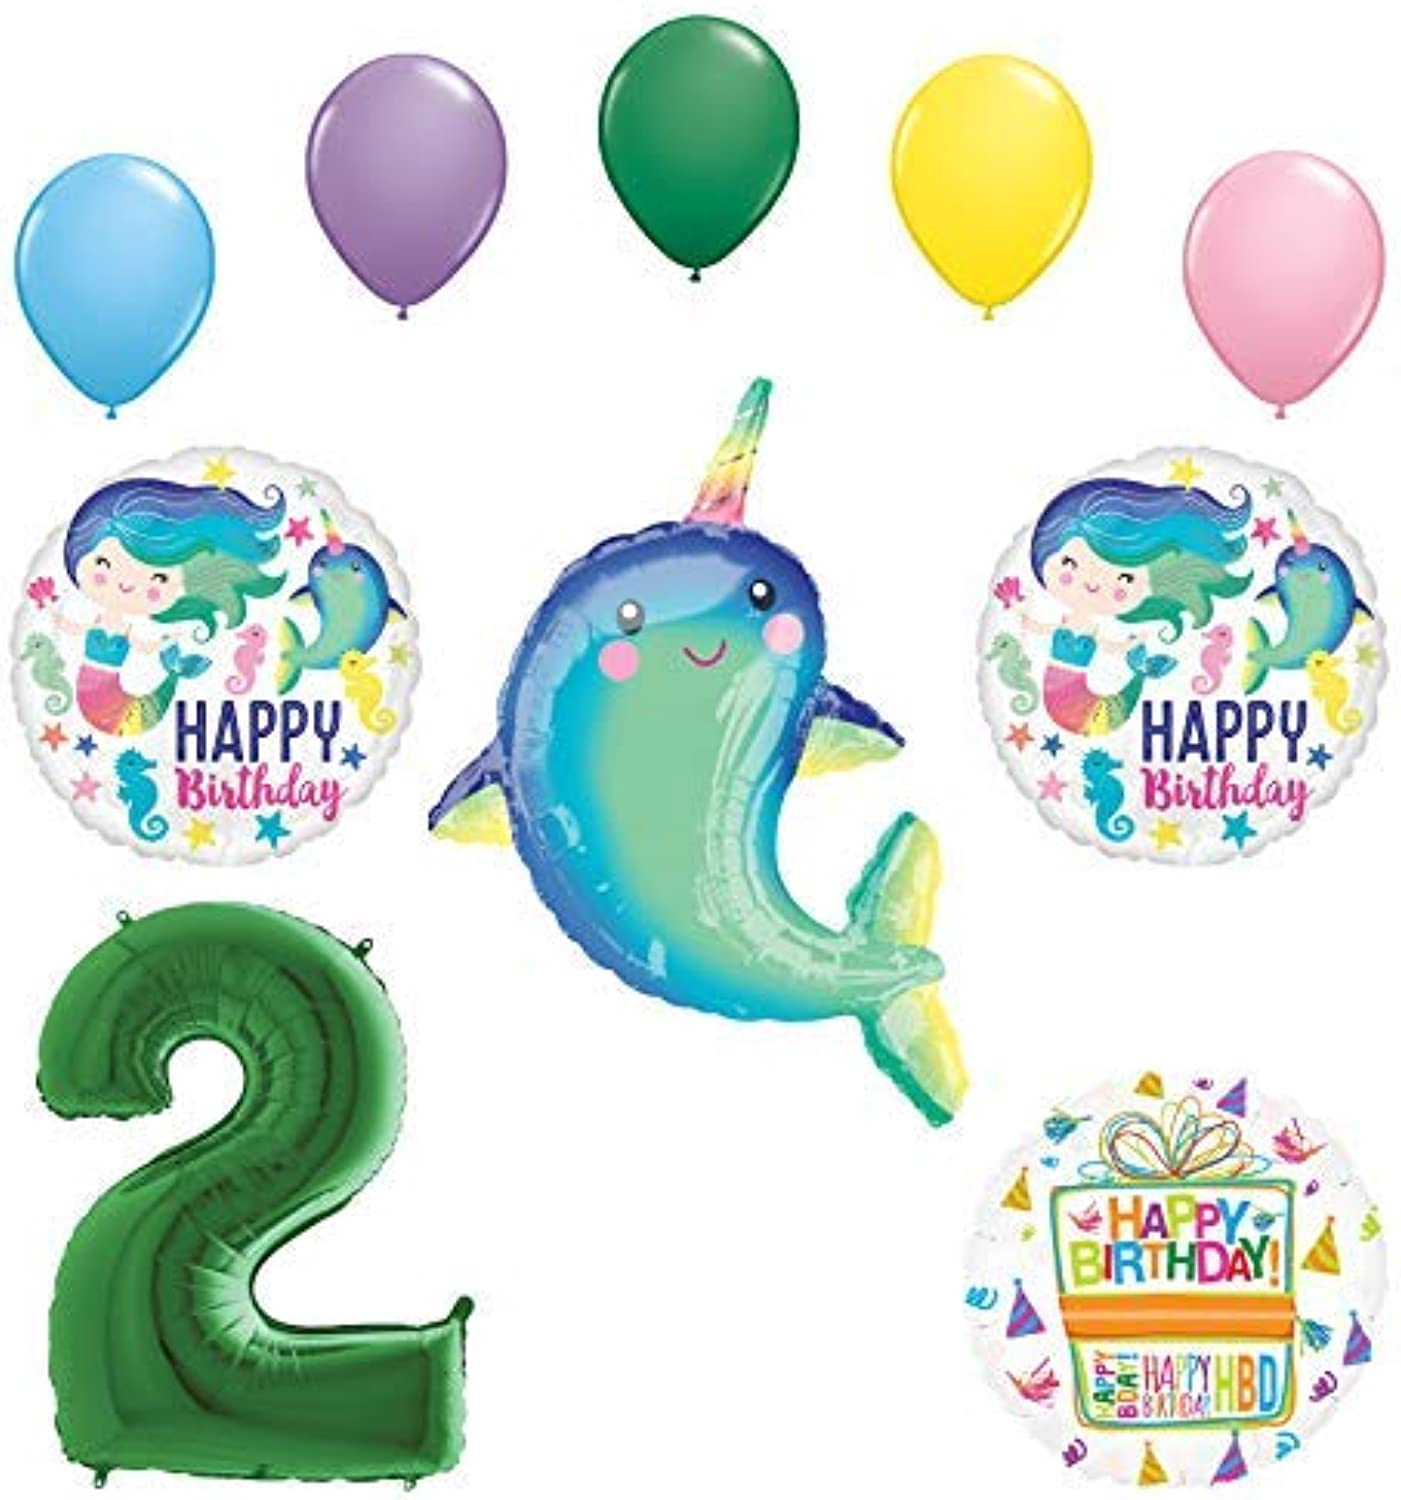 Mayflower Products Mermaid and Narwhal Party Supplies 2nd Birthday Balloon Bouquet Decorations